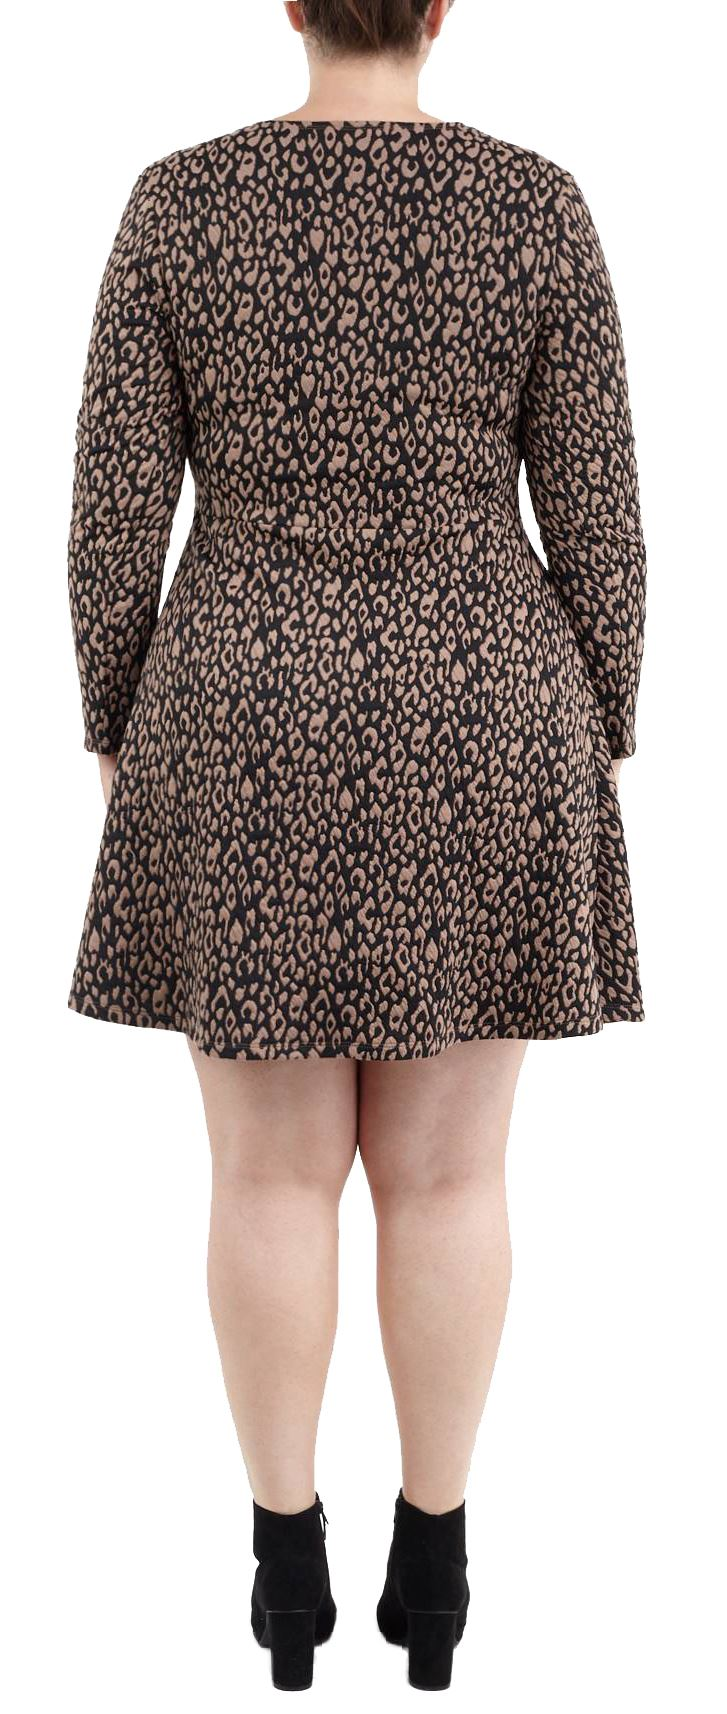 New Ladies Jacquard Print Long Sleeve Skater Swing Dress 16-22